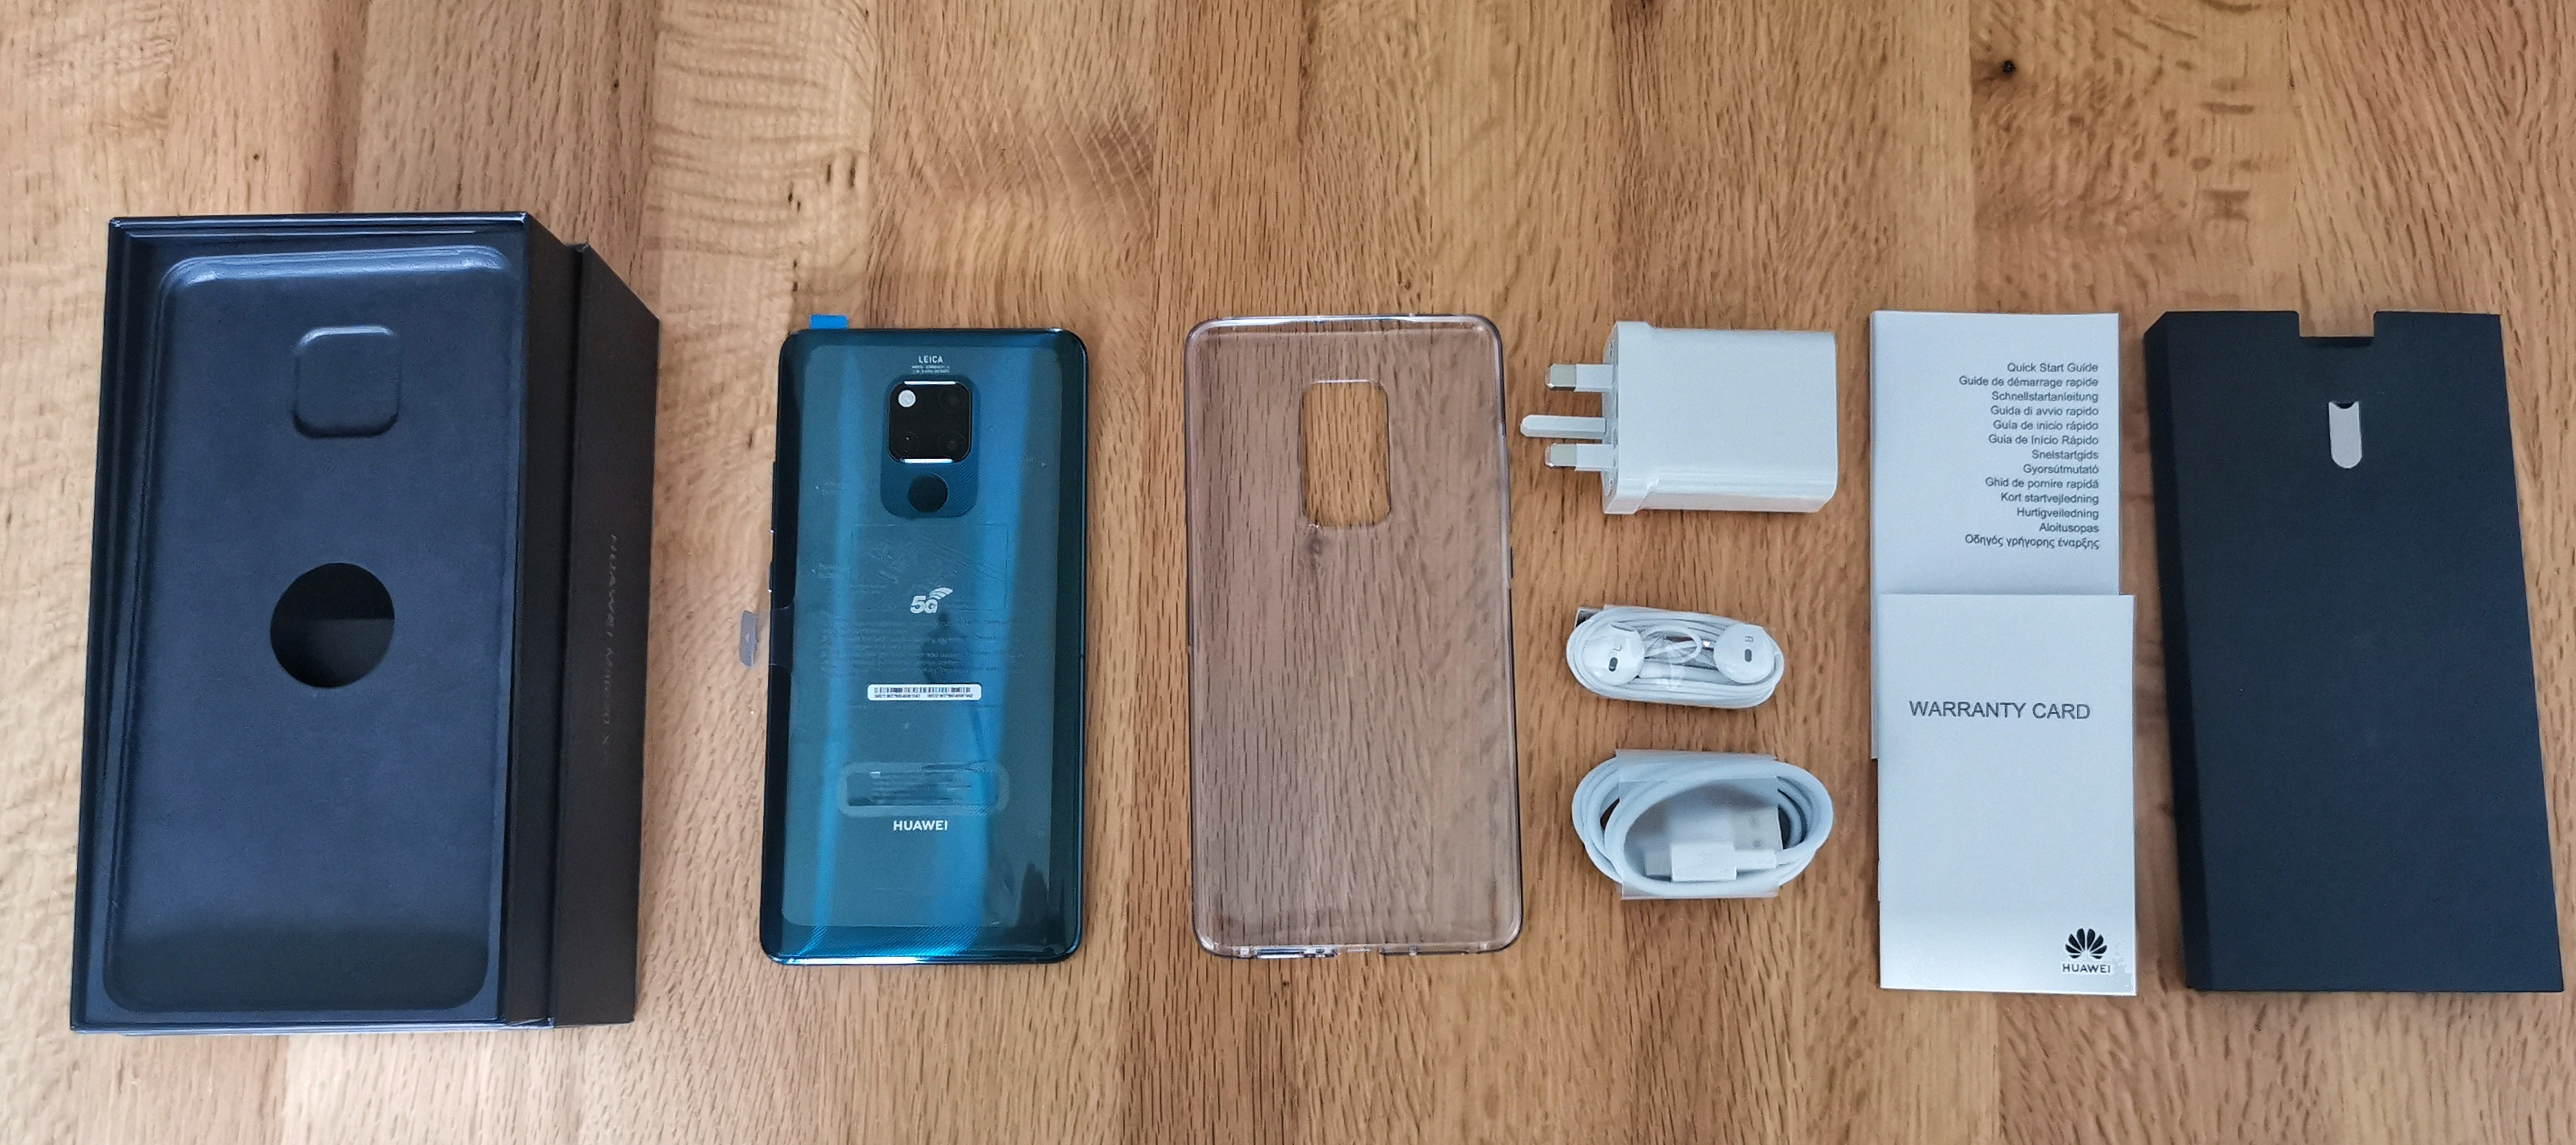 Huawei 5G Phone - First Impressions of the Mate 20 X 5G